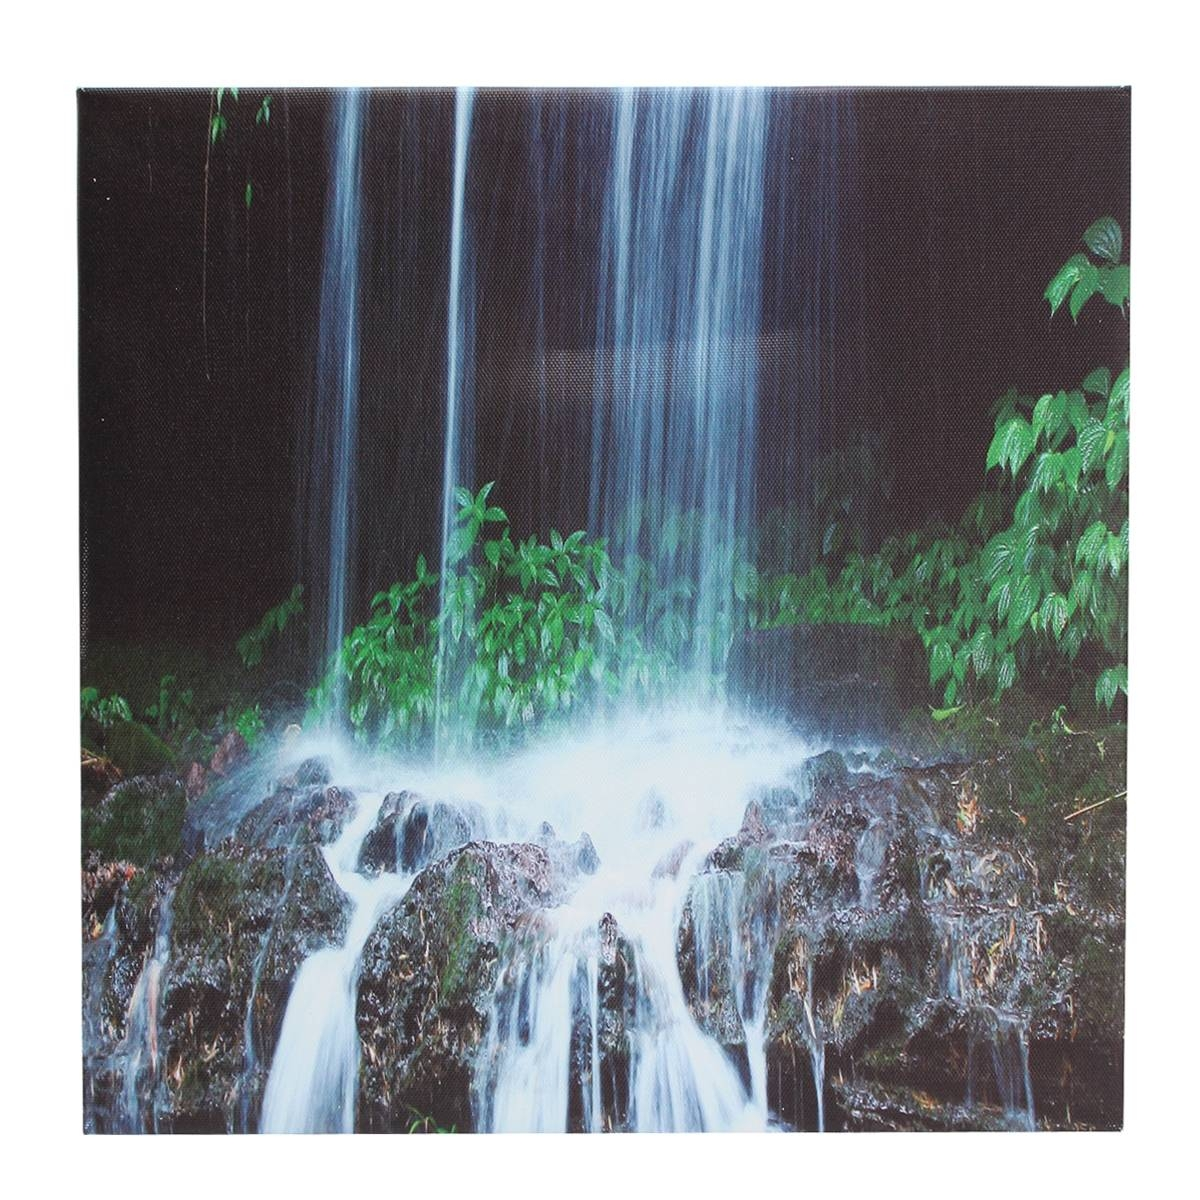 3 Cascade Large Waterfall Framed Print Painting Canvas Wall Art Inside Most Popular Waterfall Wall Art (View 5 of 20)